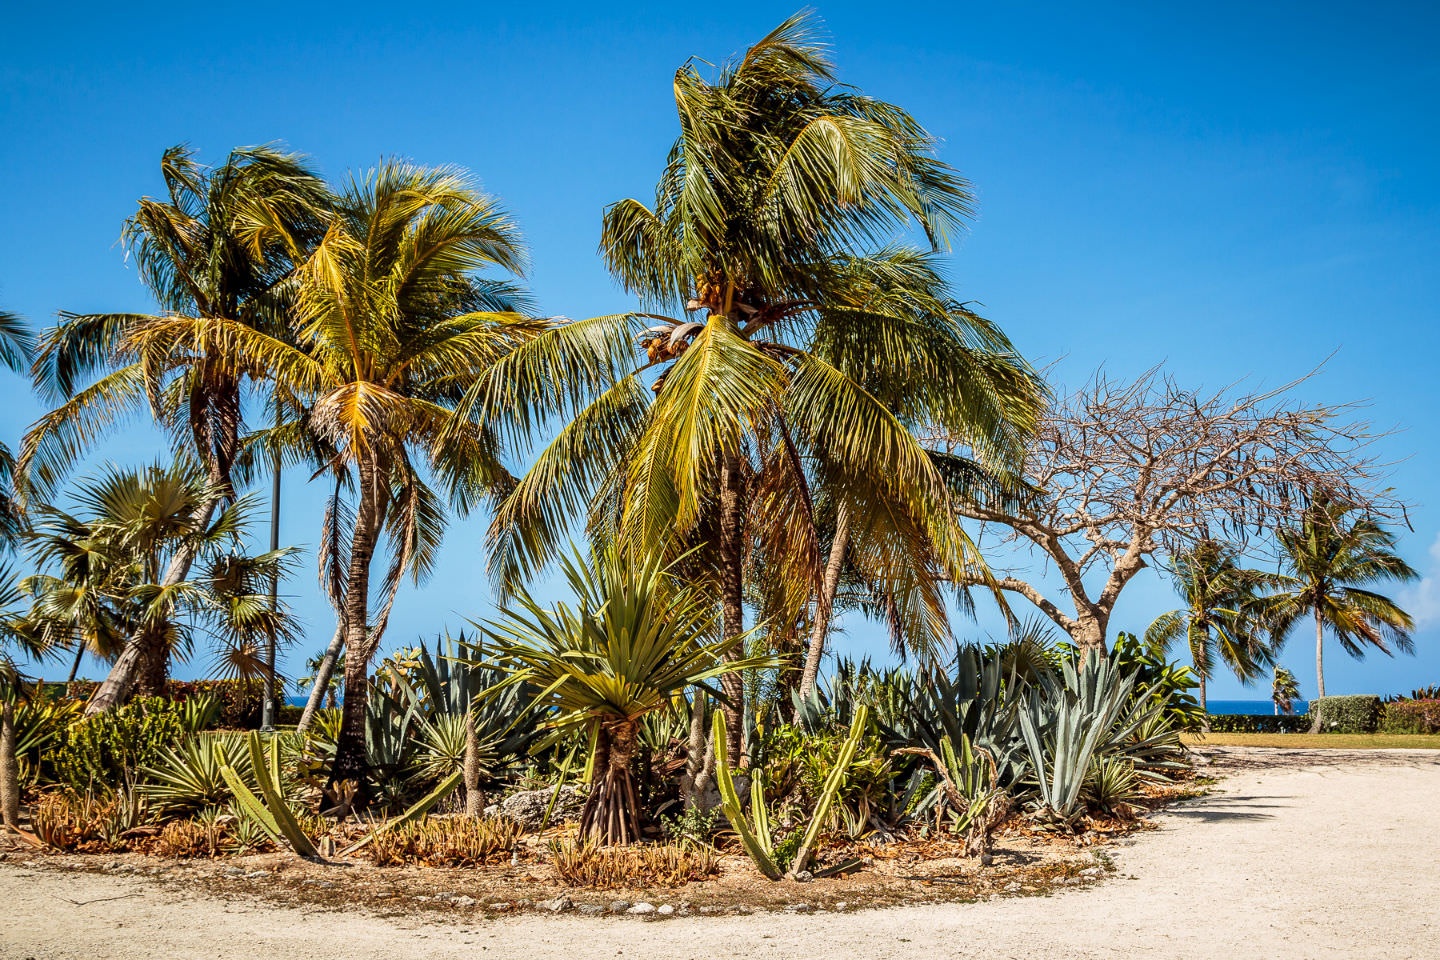 Palm trees at the Pedro St. James historic site on Grand Cayman.